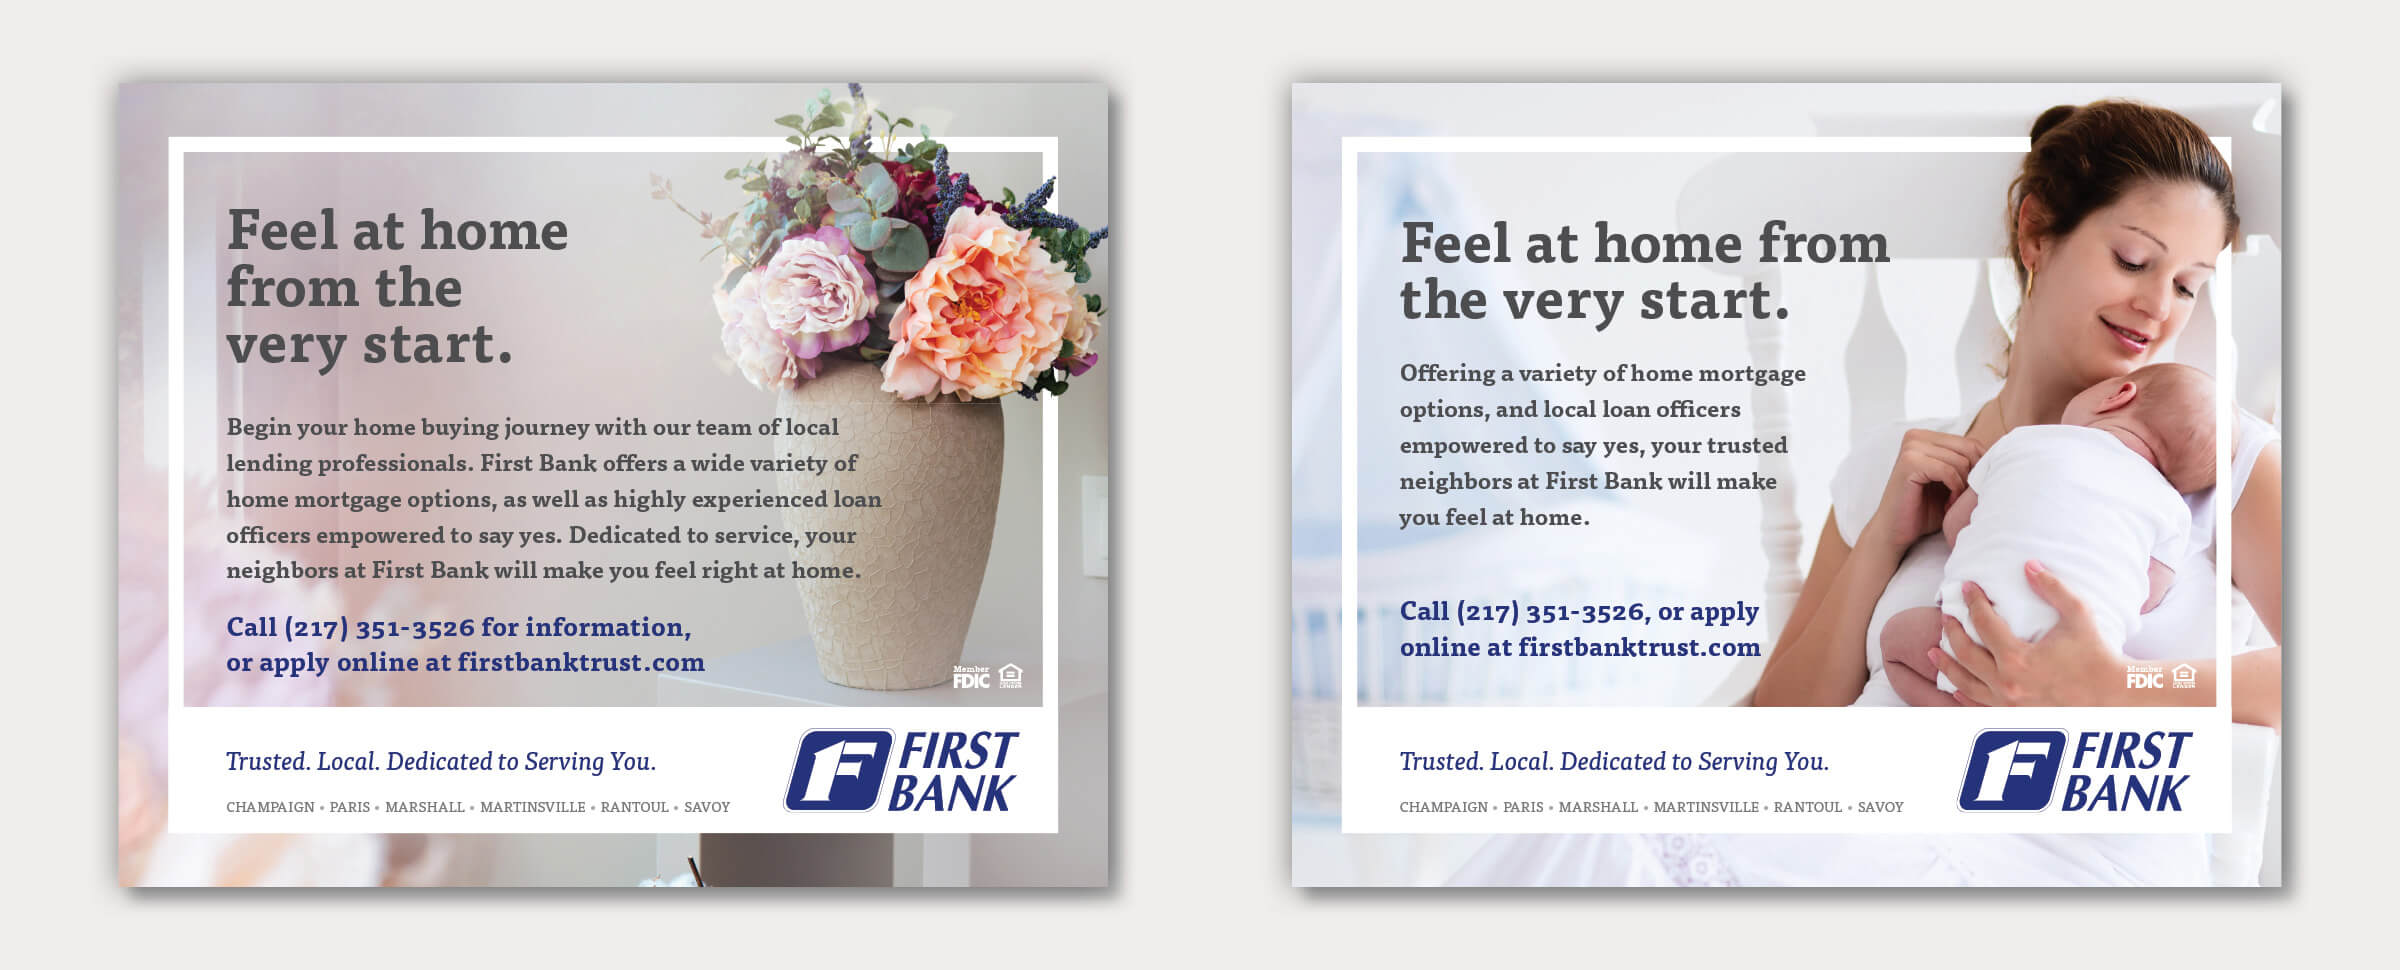 First Bank | Mortgage Campaign